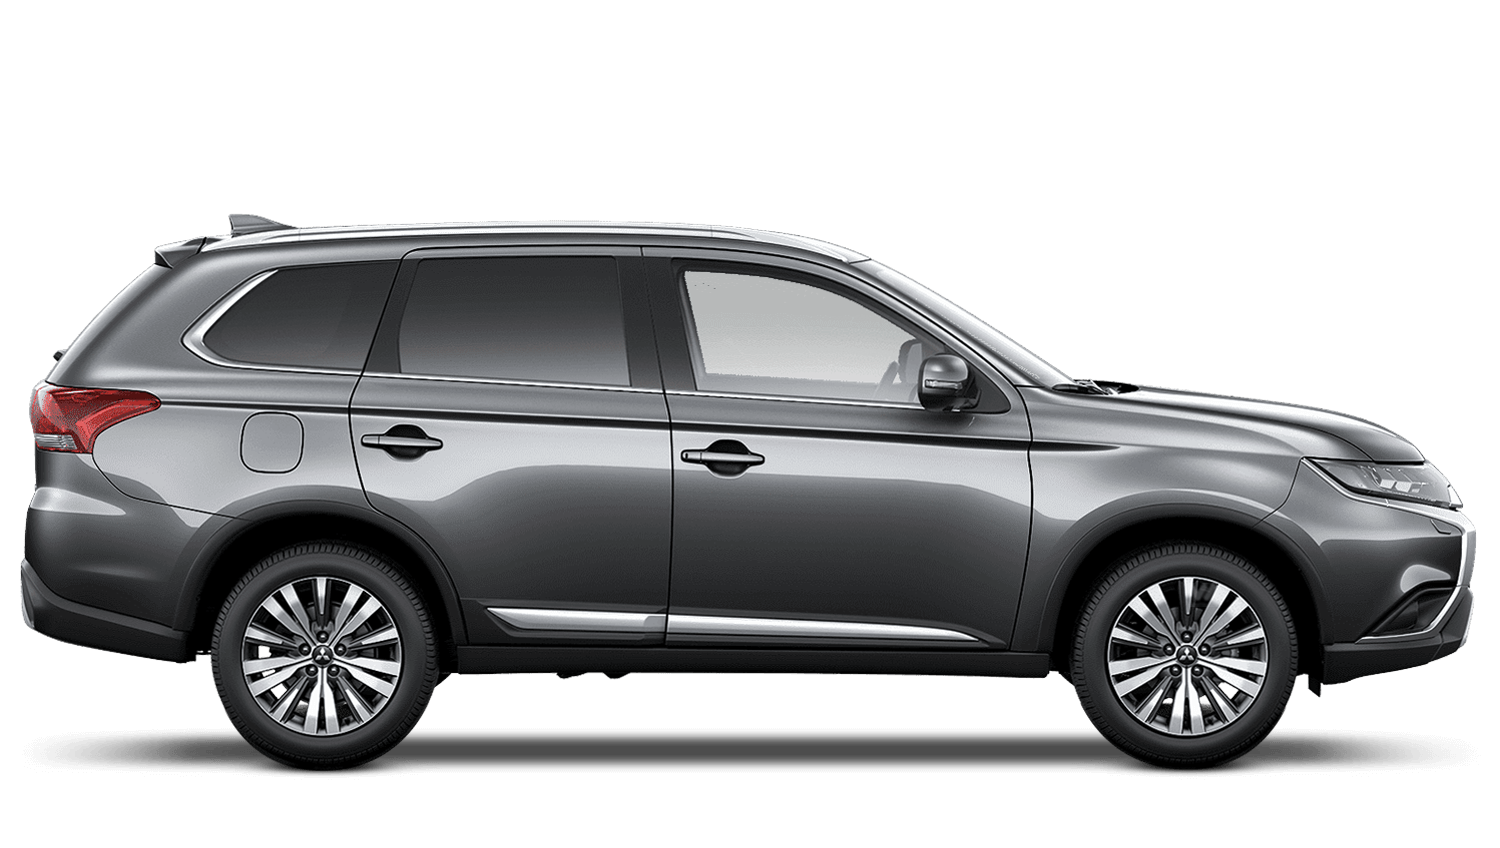 Atlantic Grey Mitsubishi Outlander